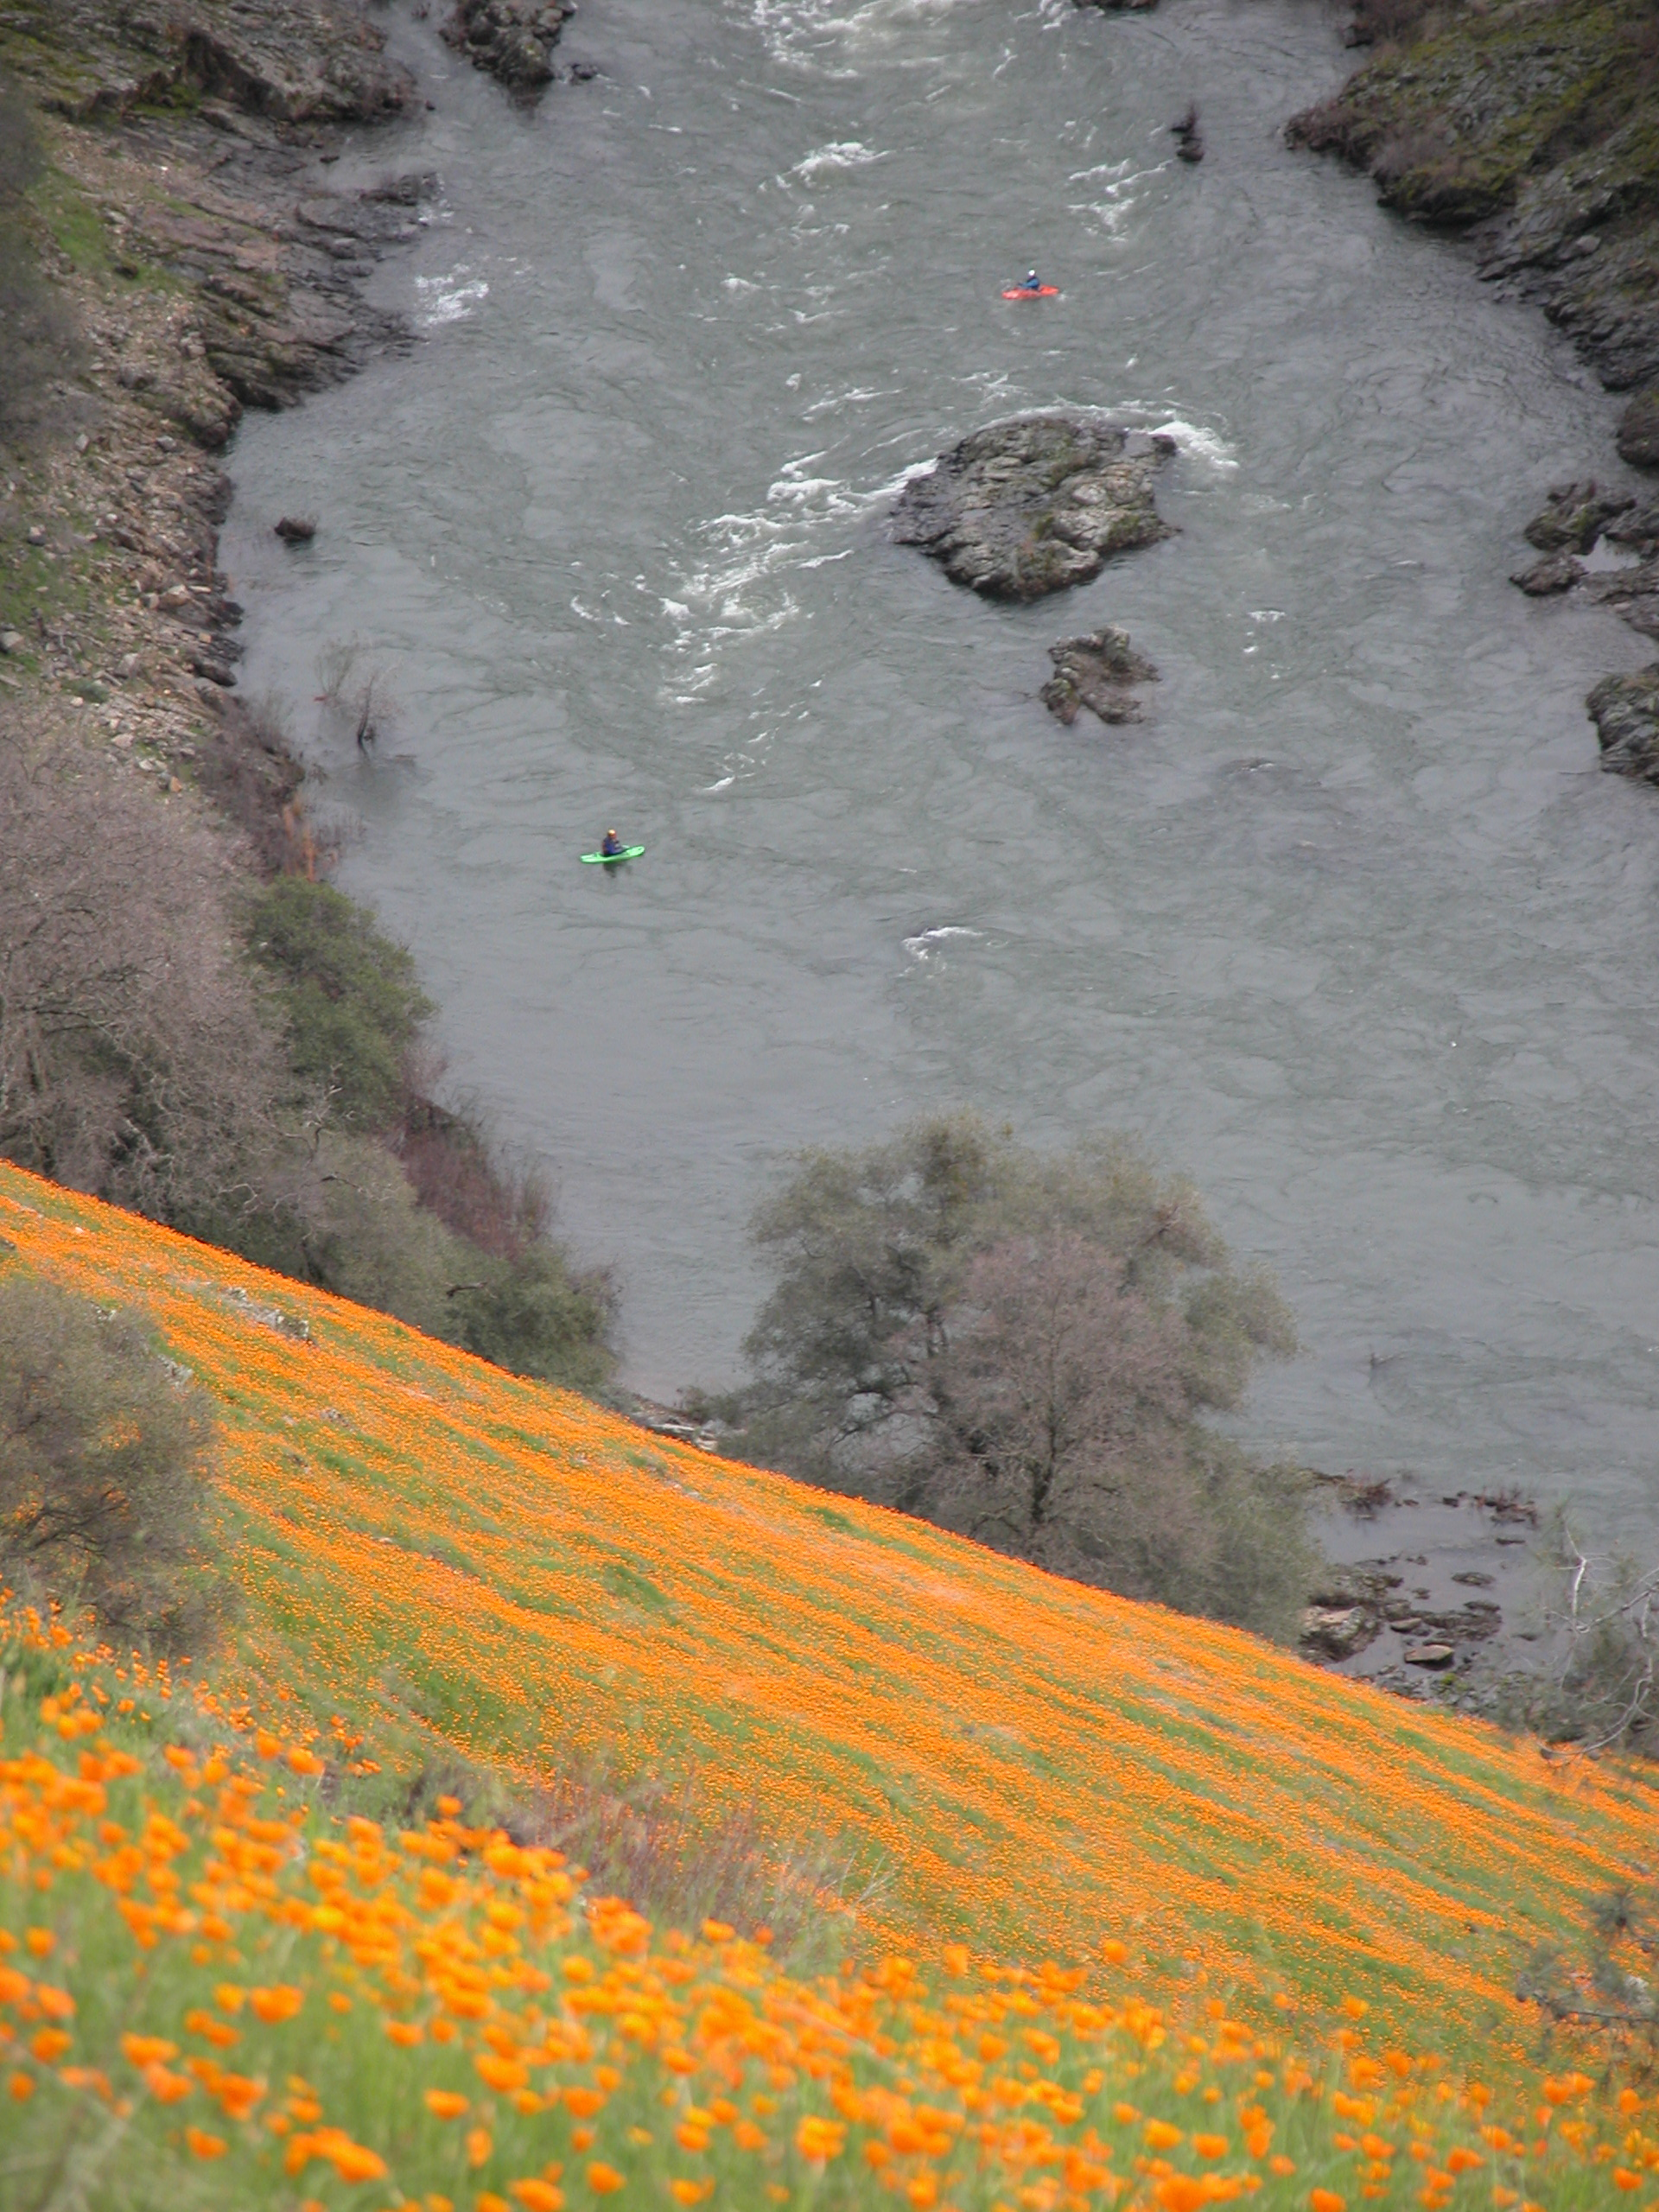 This picture is from the Upper South Fork American, a popular run that many use Camp Lotus to take-out from.